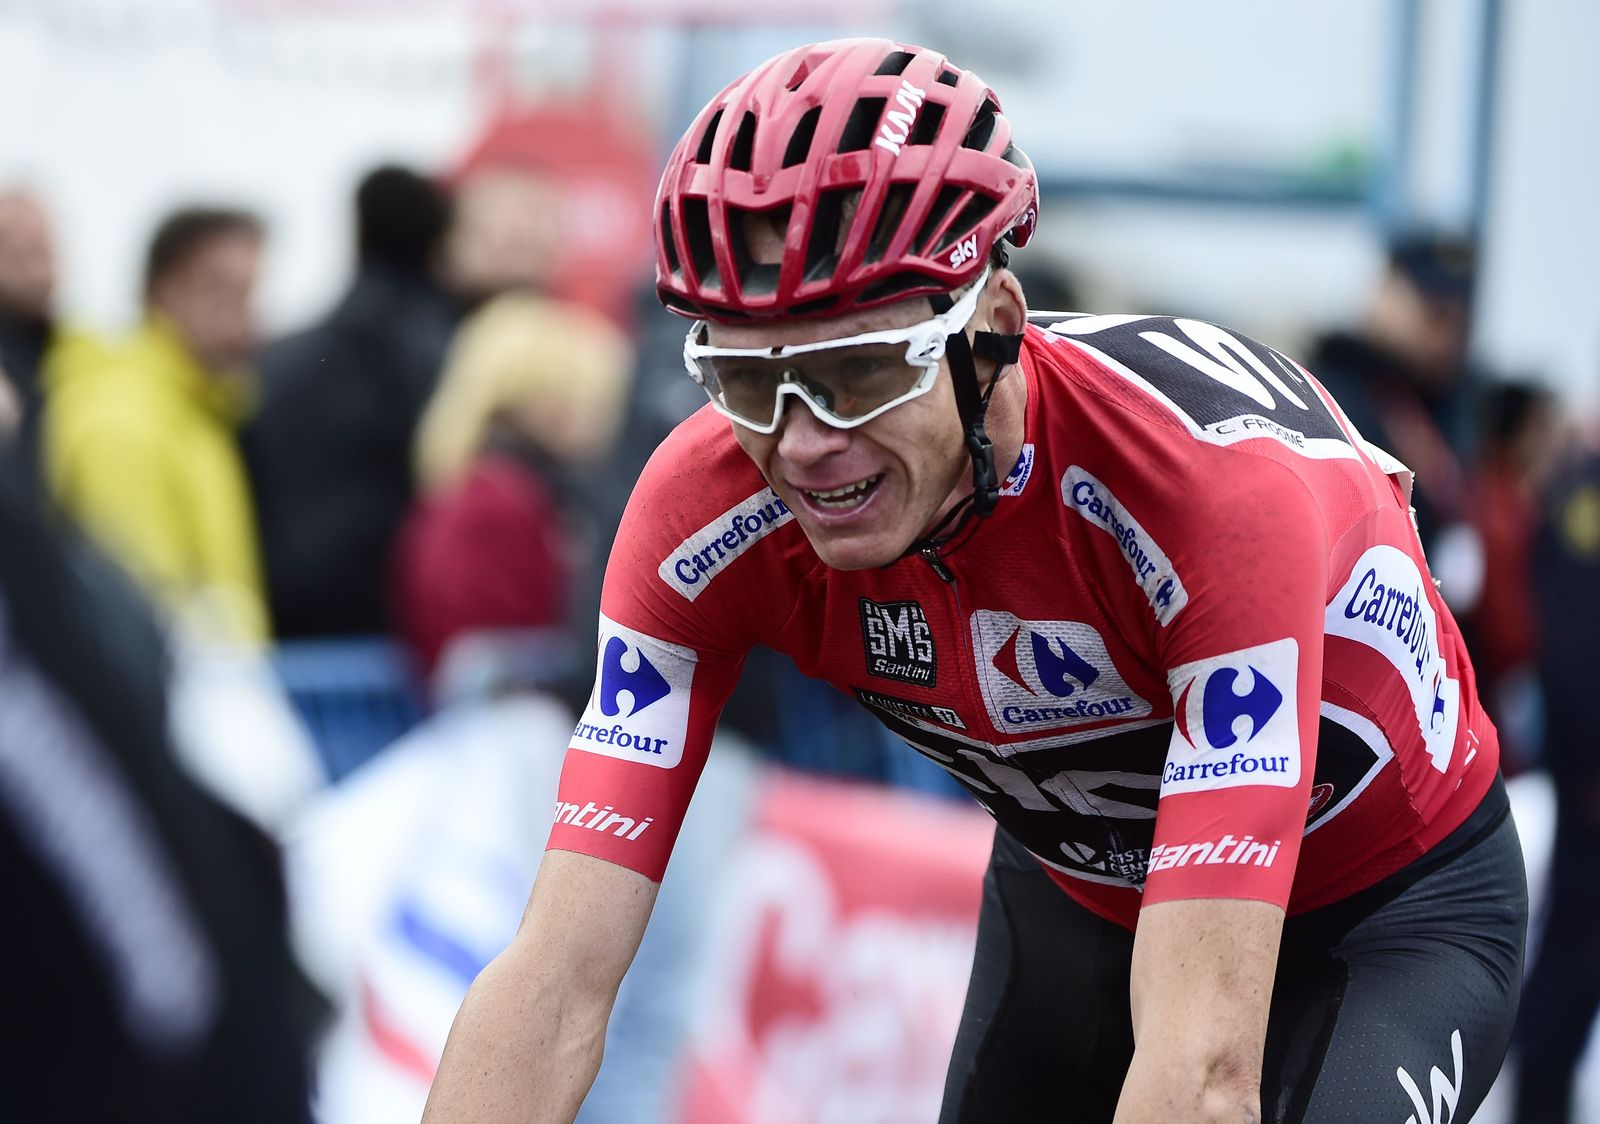 FILES-CYCLING-DOPING-BRITIAN-SPORT-FROOME